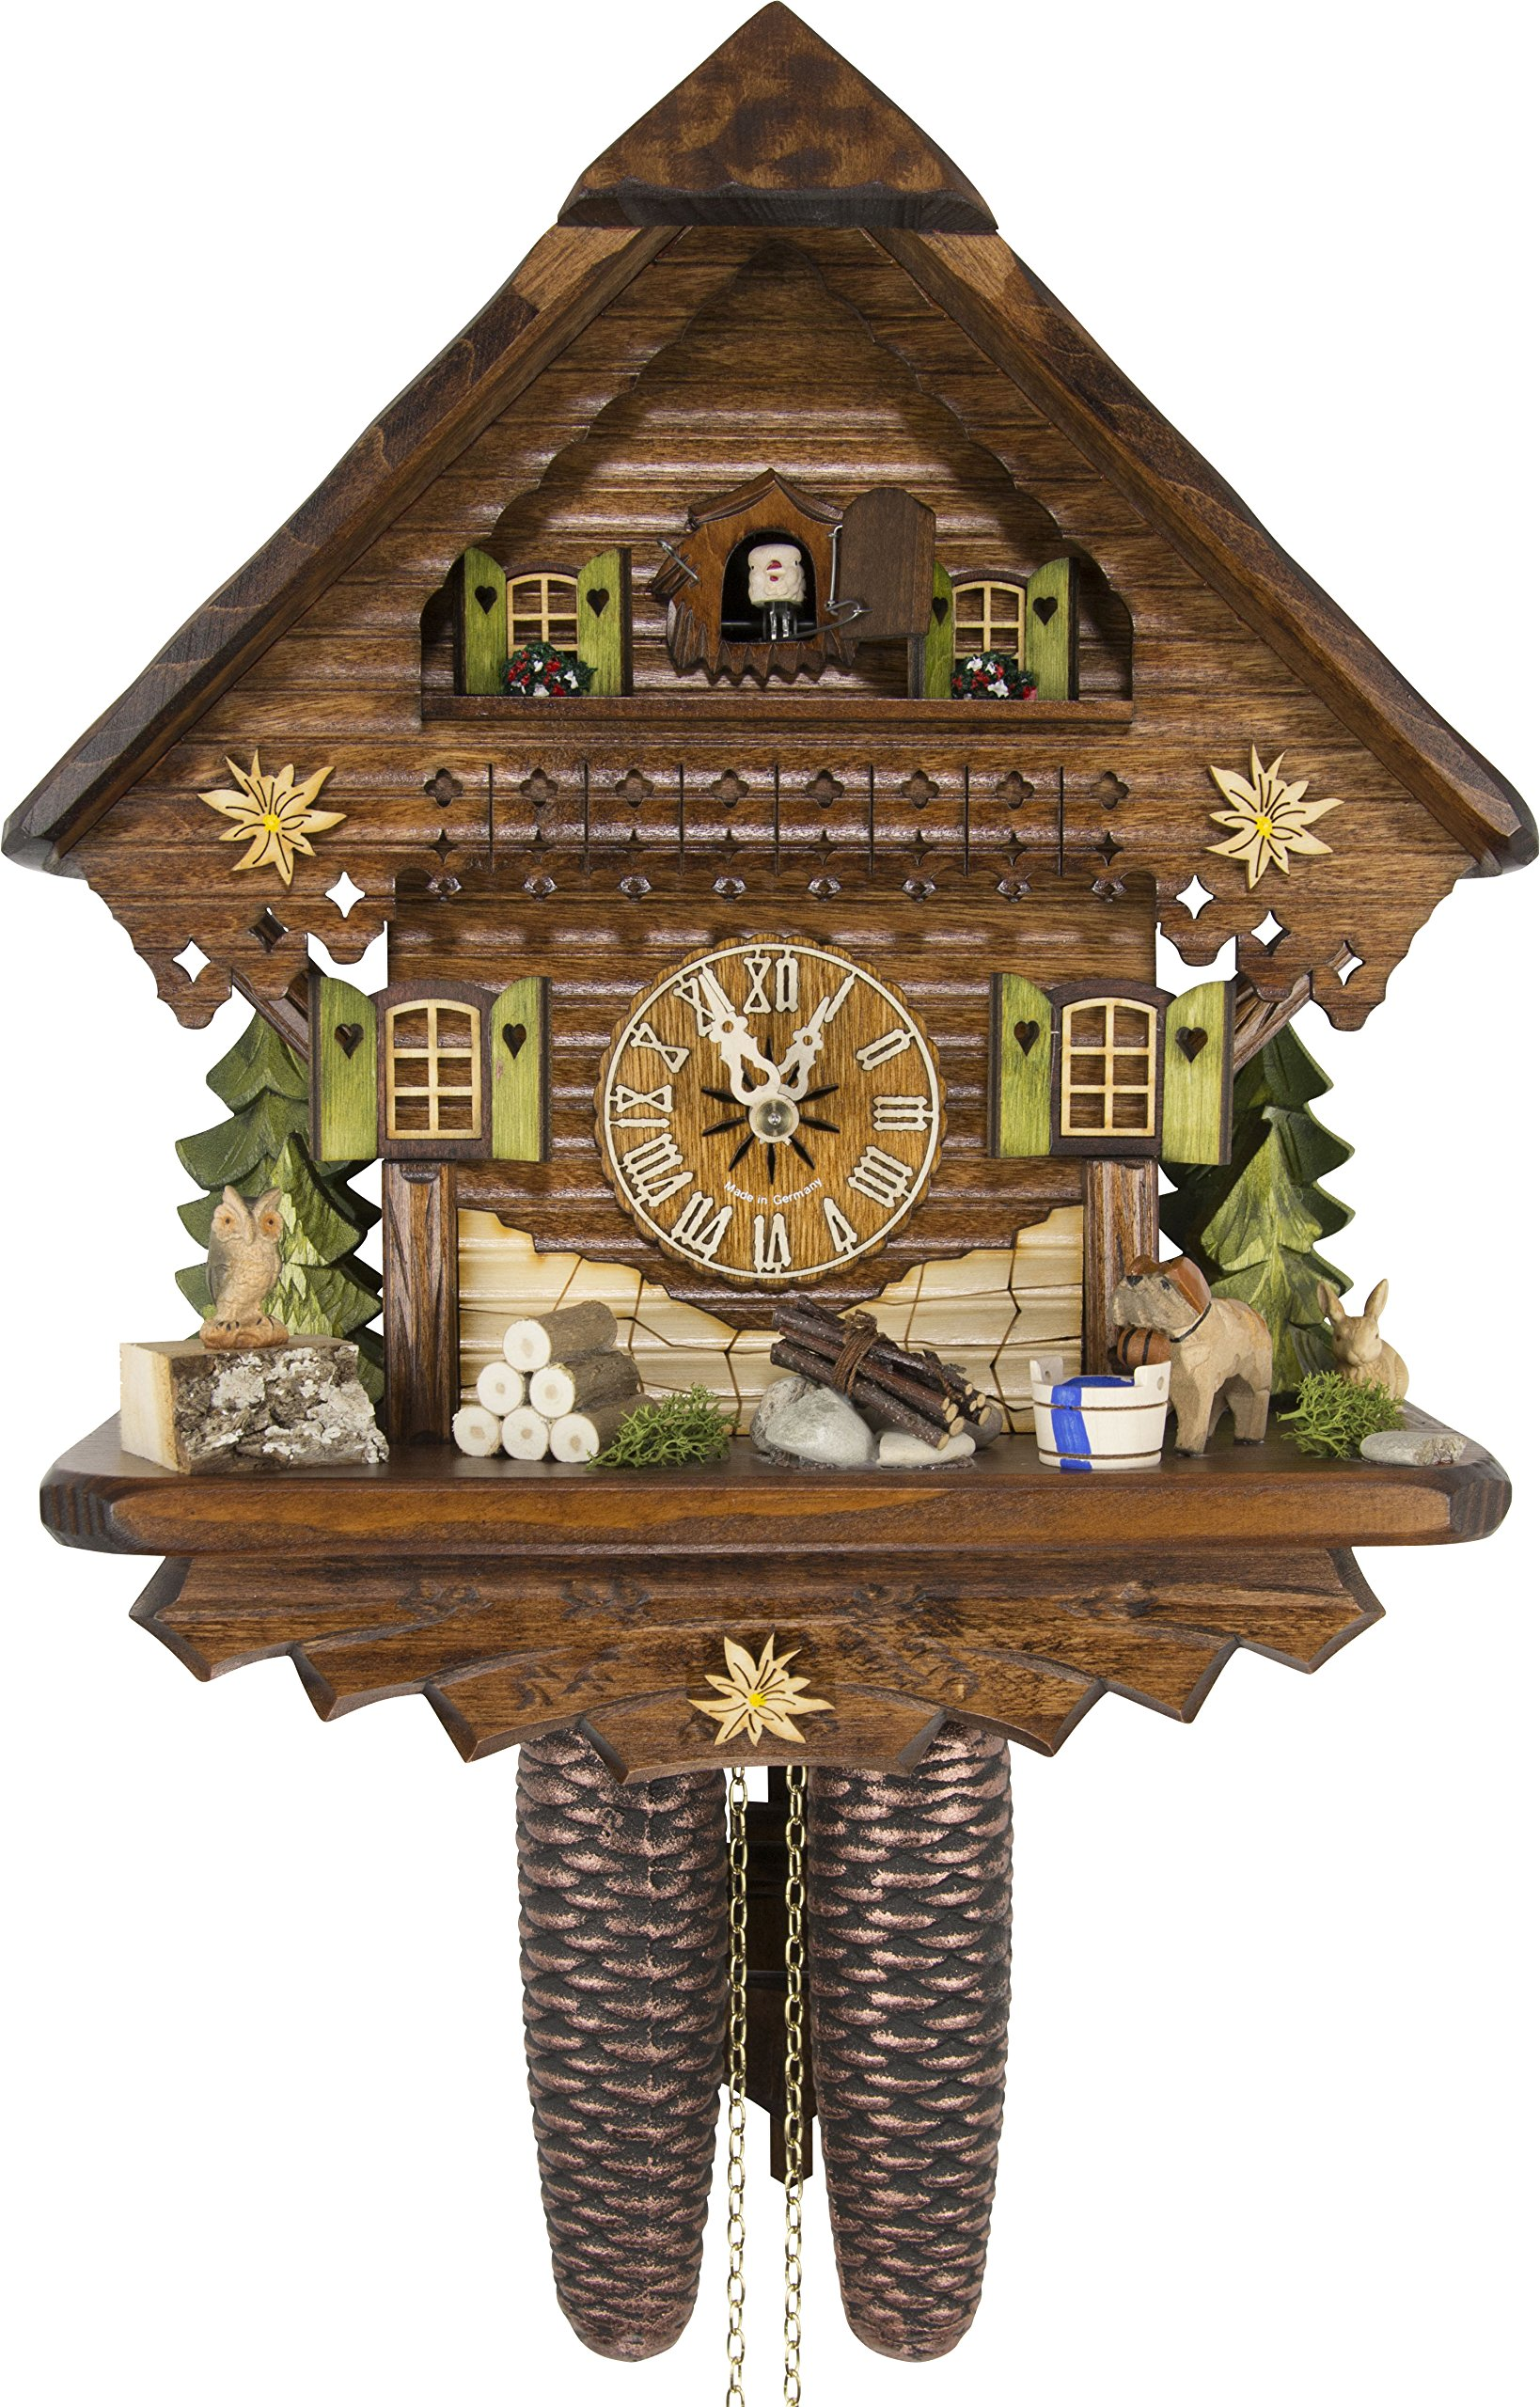 German Cuckoo Clock - Summer Meadow Chalet - BY CUCKOO-PALACE with 8-day-movement - 13 1/3 inches height by Cuckoo-Palace